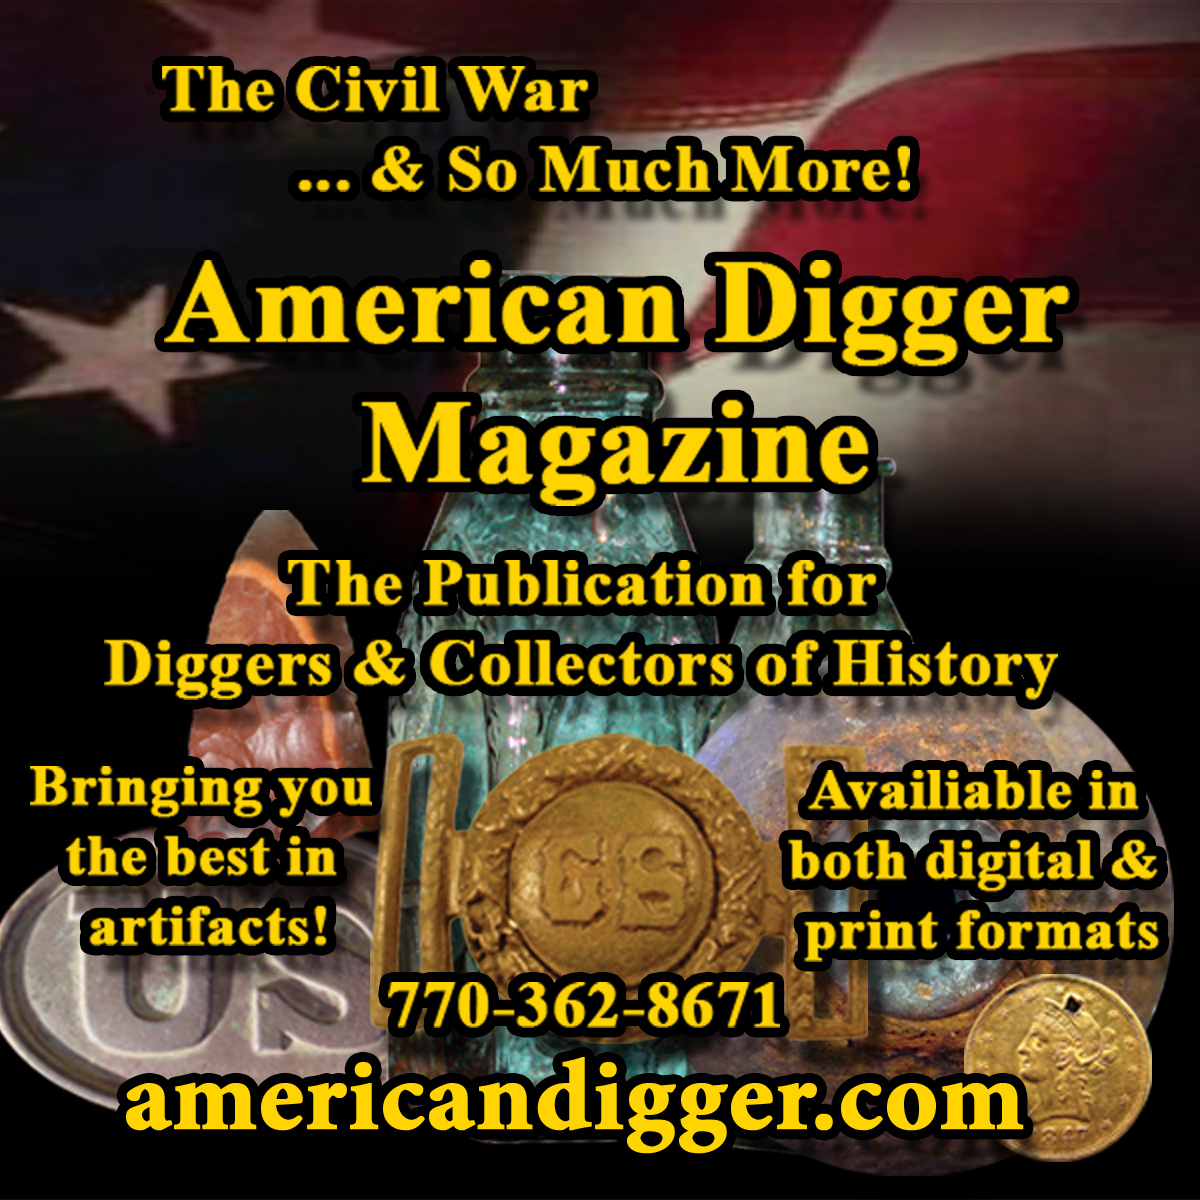 American Digger Magazine Subscriptions